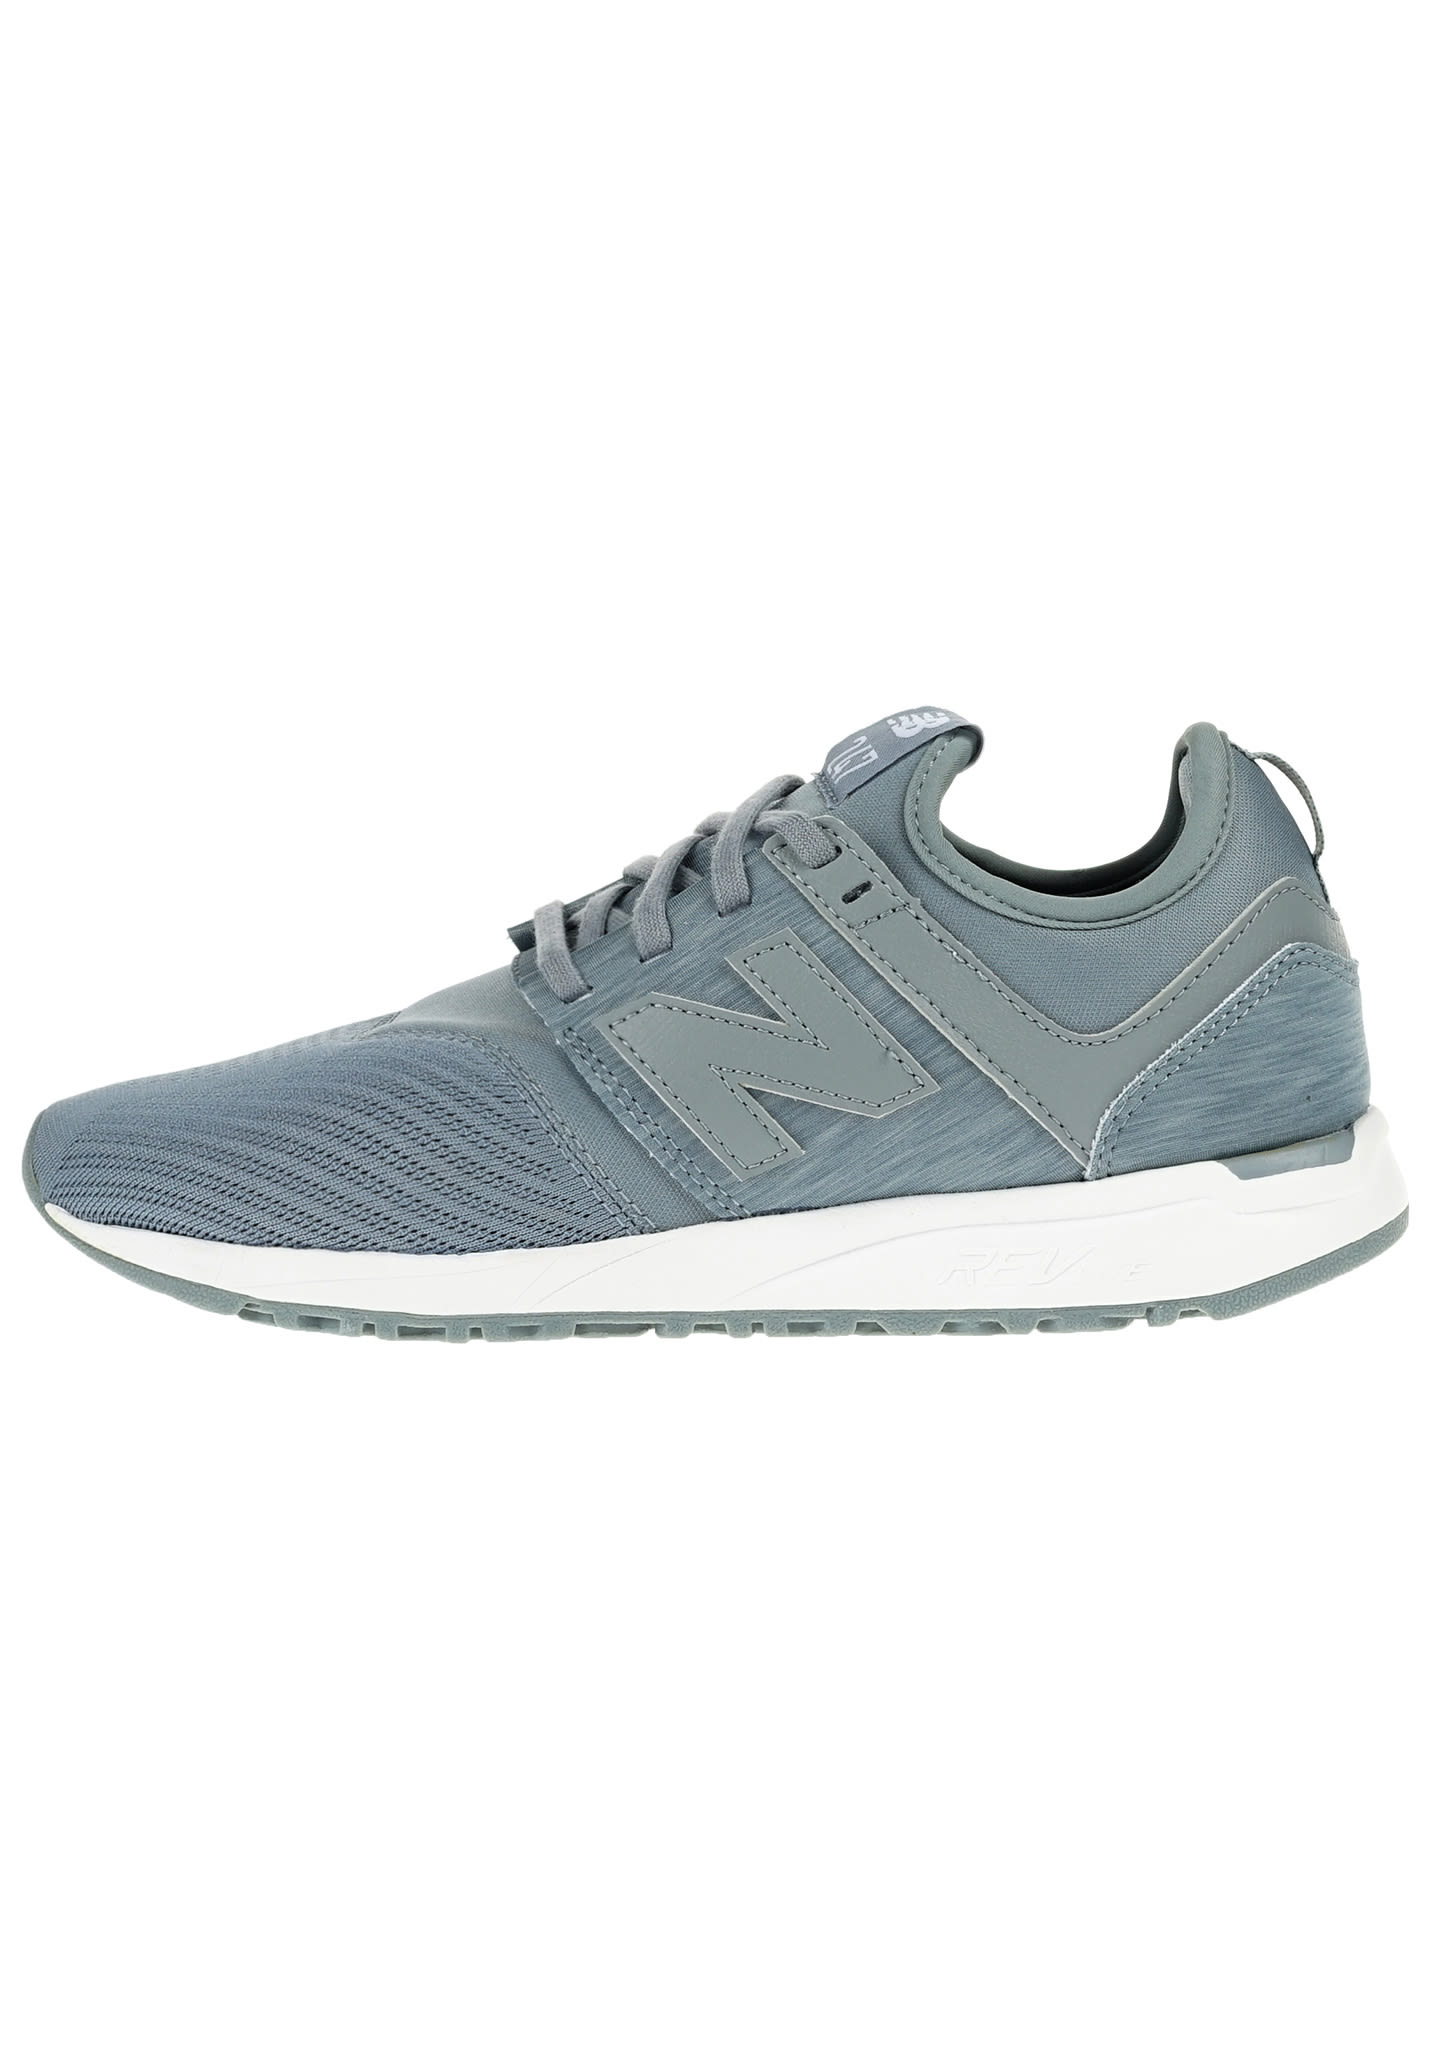 b5d6c3e70 NEW BALANCE WRL247 B - Zapatillas para Mujeres - Azul - Planet Sports